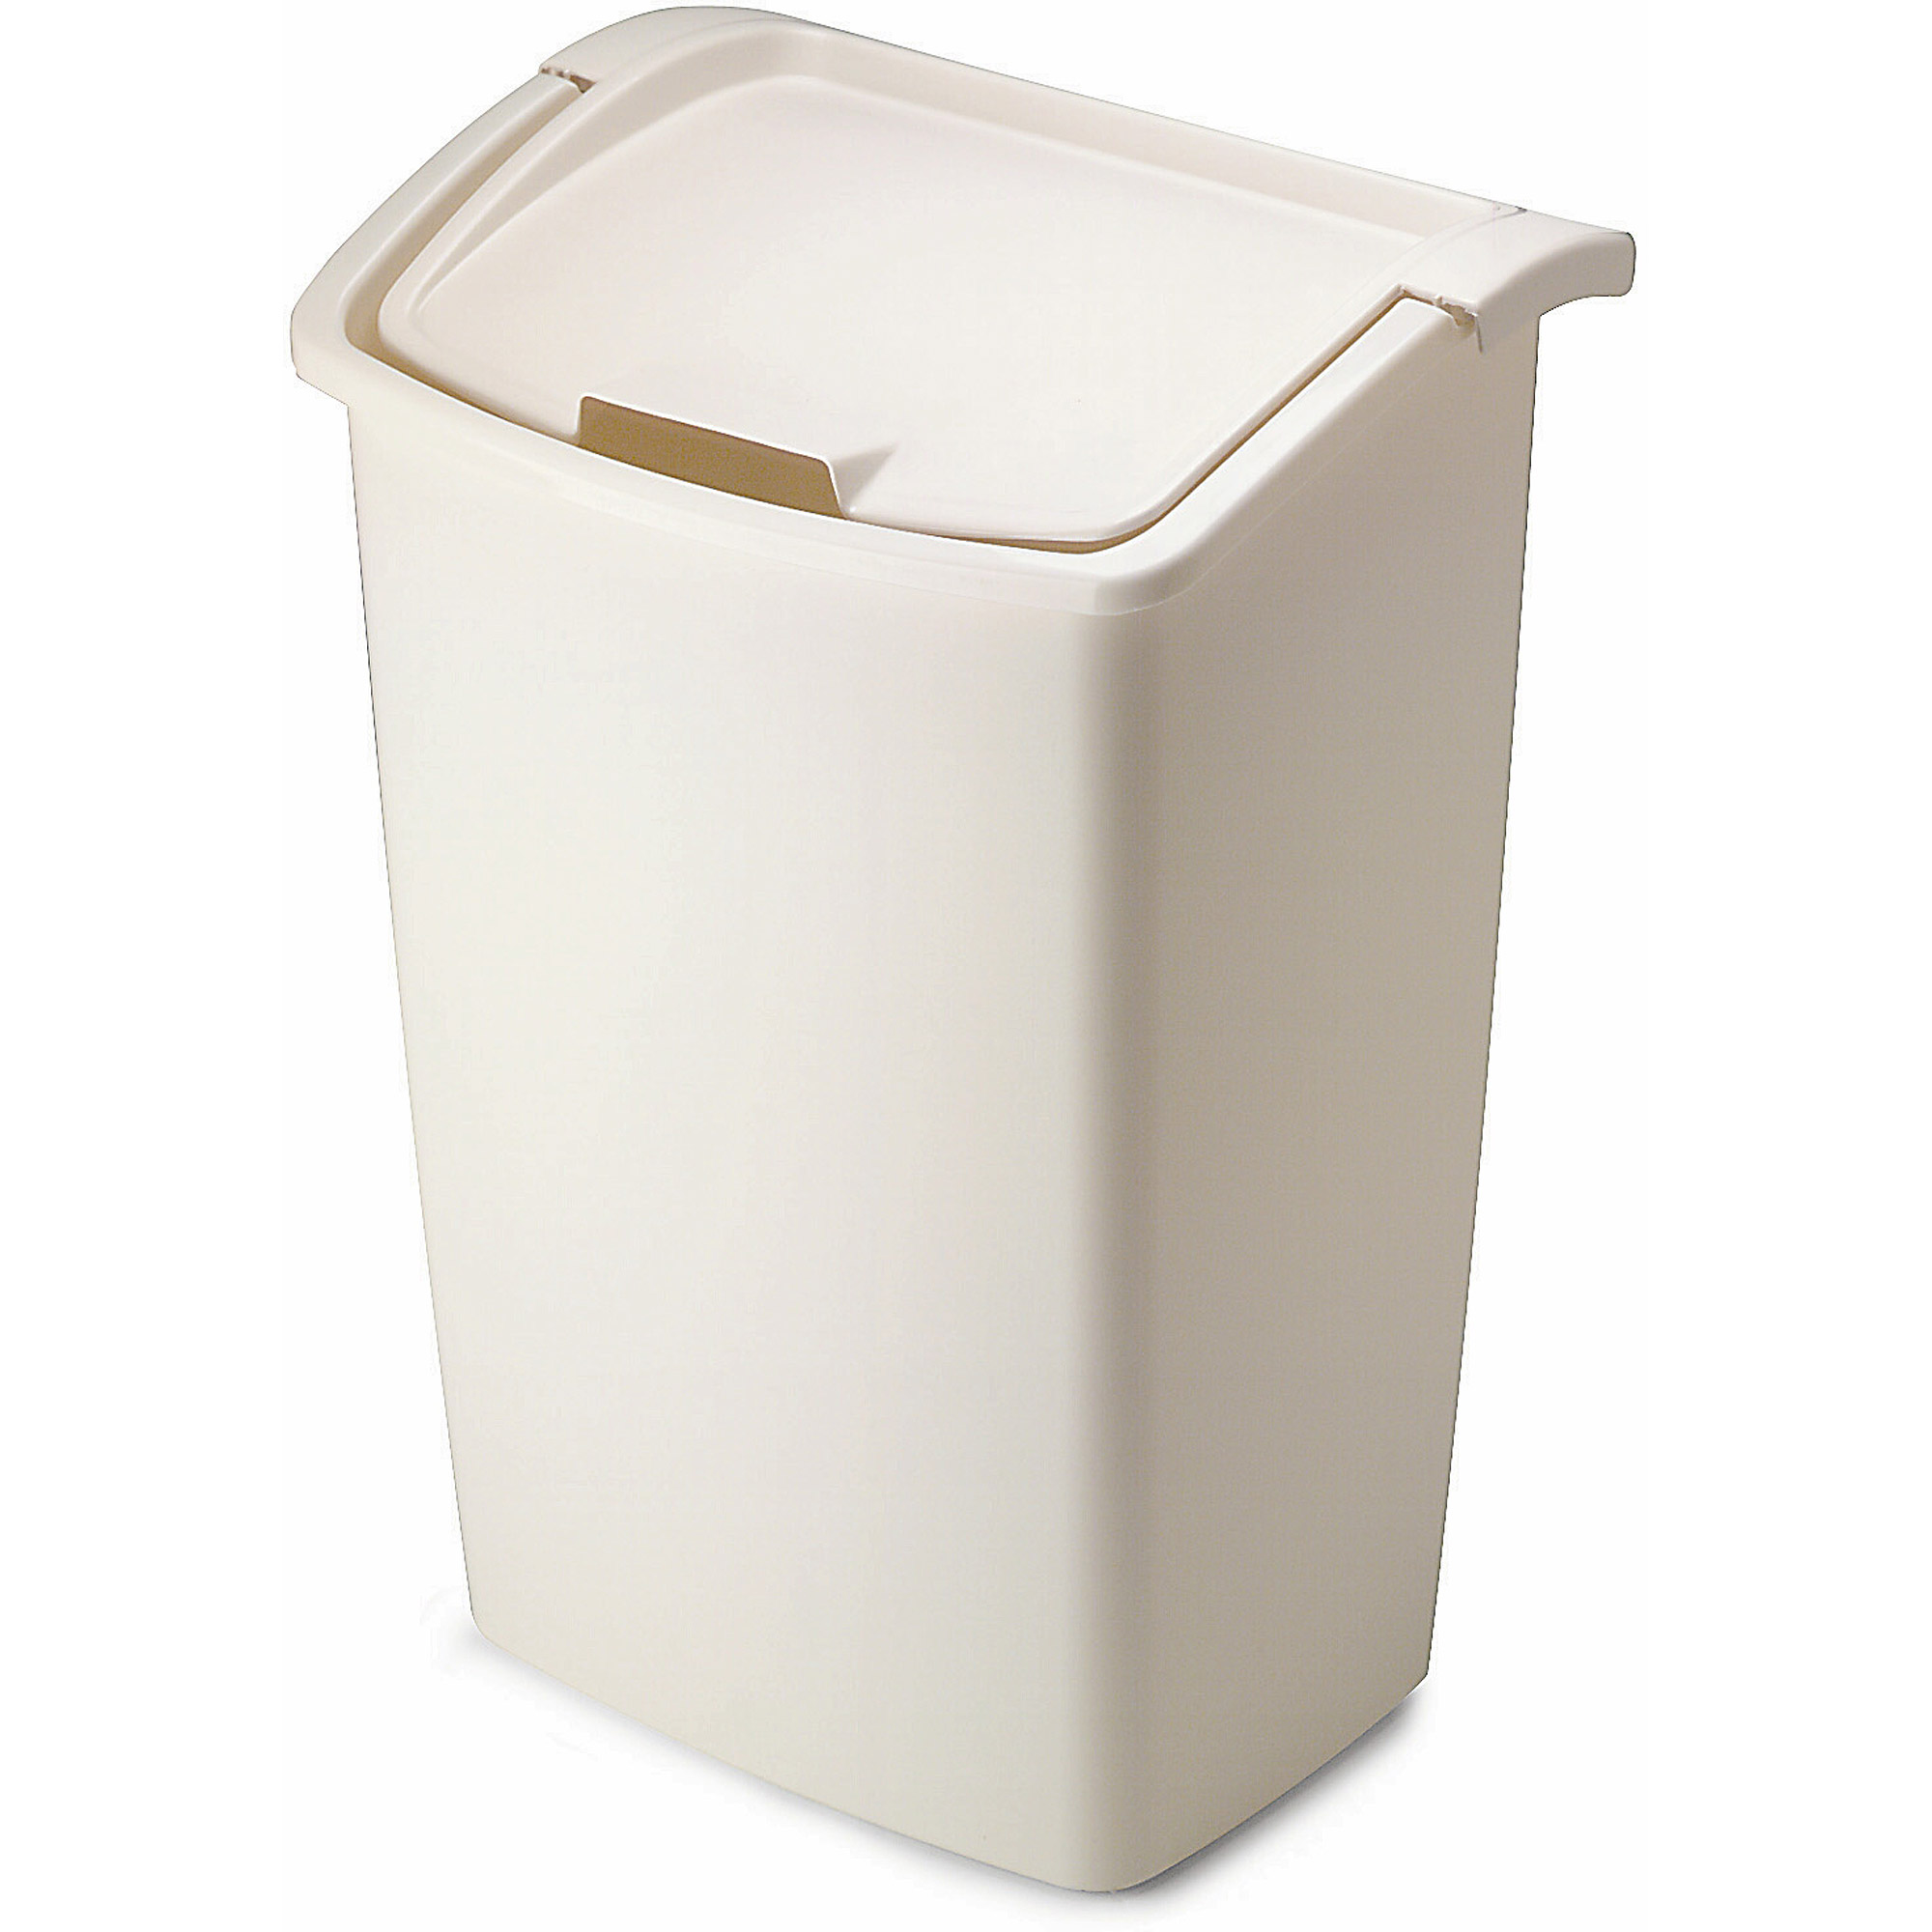 Rubbermaid 11 25 Gallon Dual Action Wastebasket. Rubbermaid Trash Cans